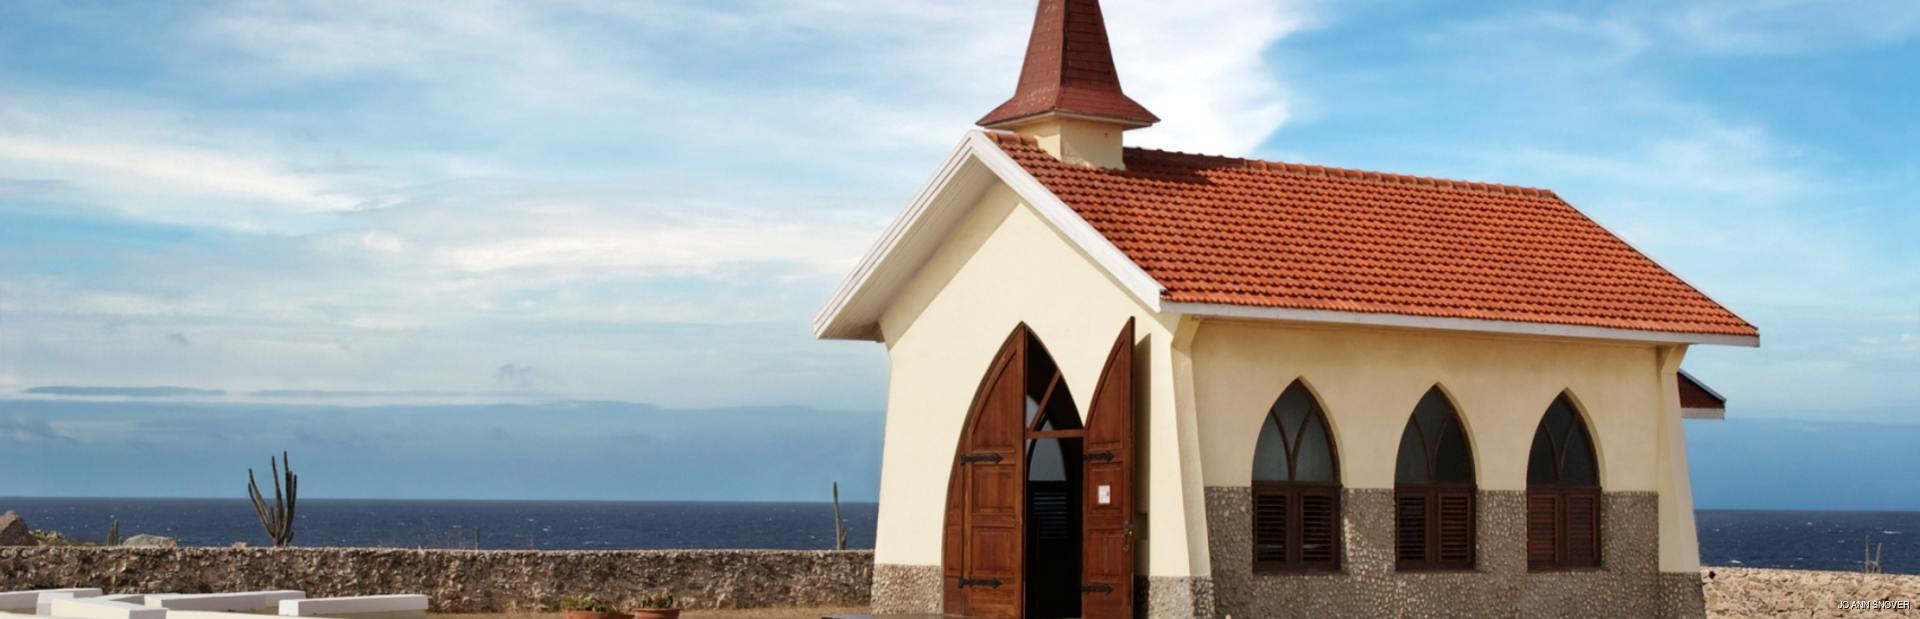 Small chapel on rocky hill